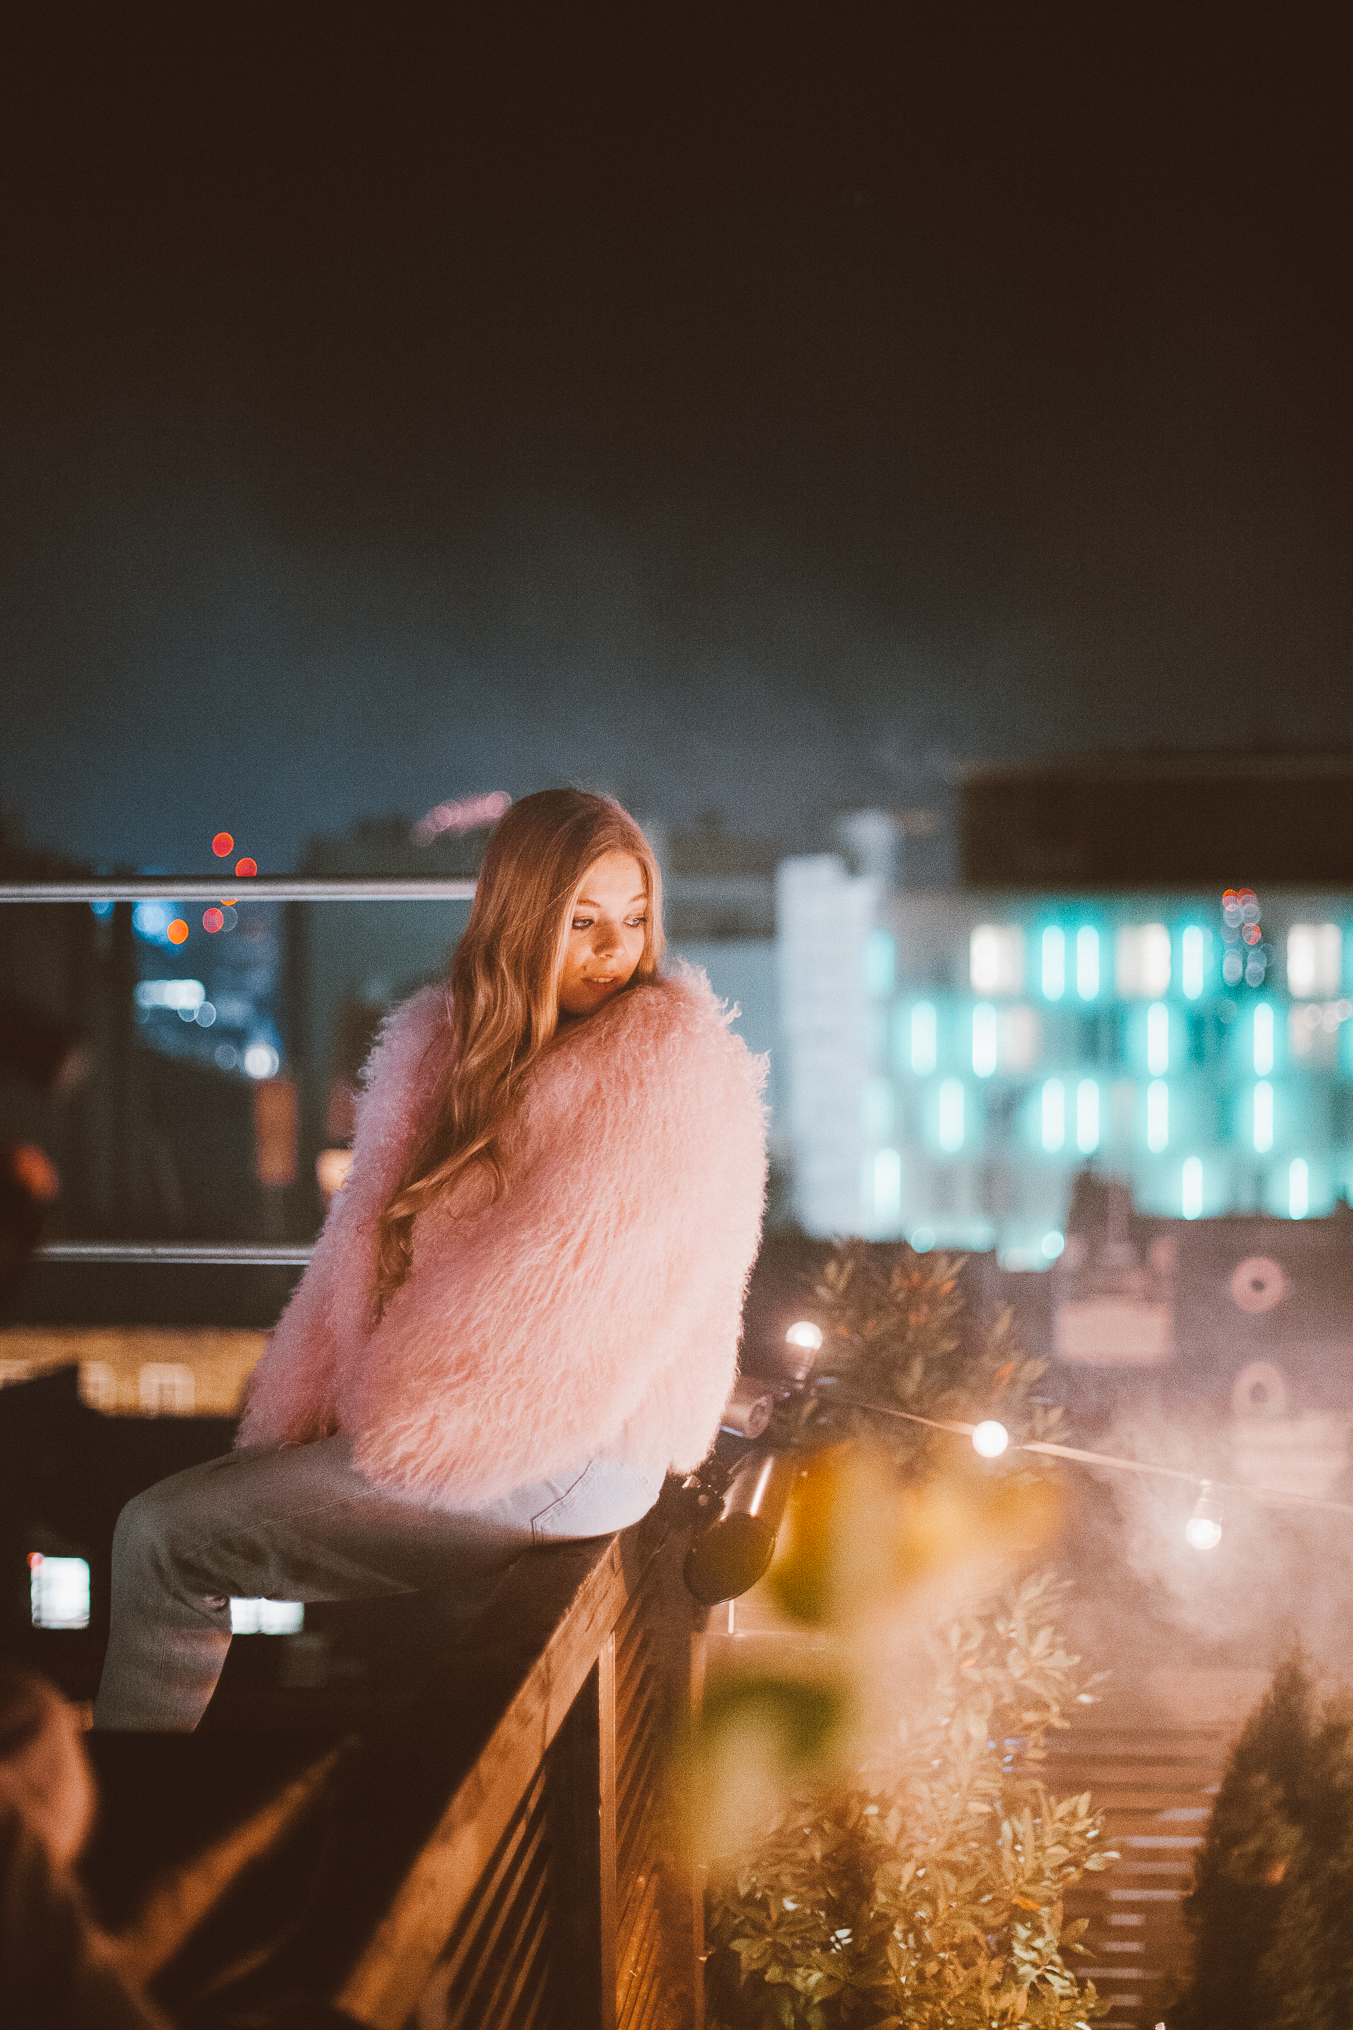 Becky Hill shot by Ailera Stone, still from music video for Warm